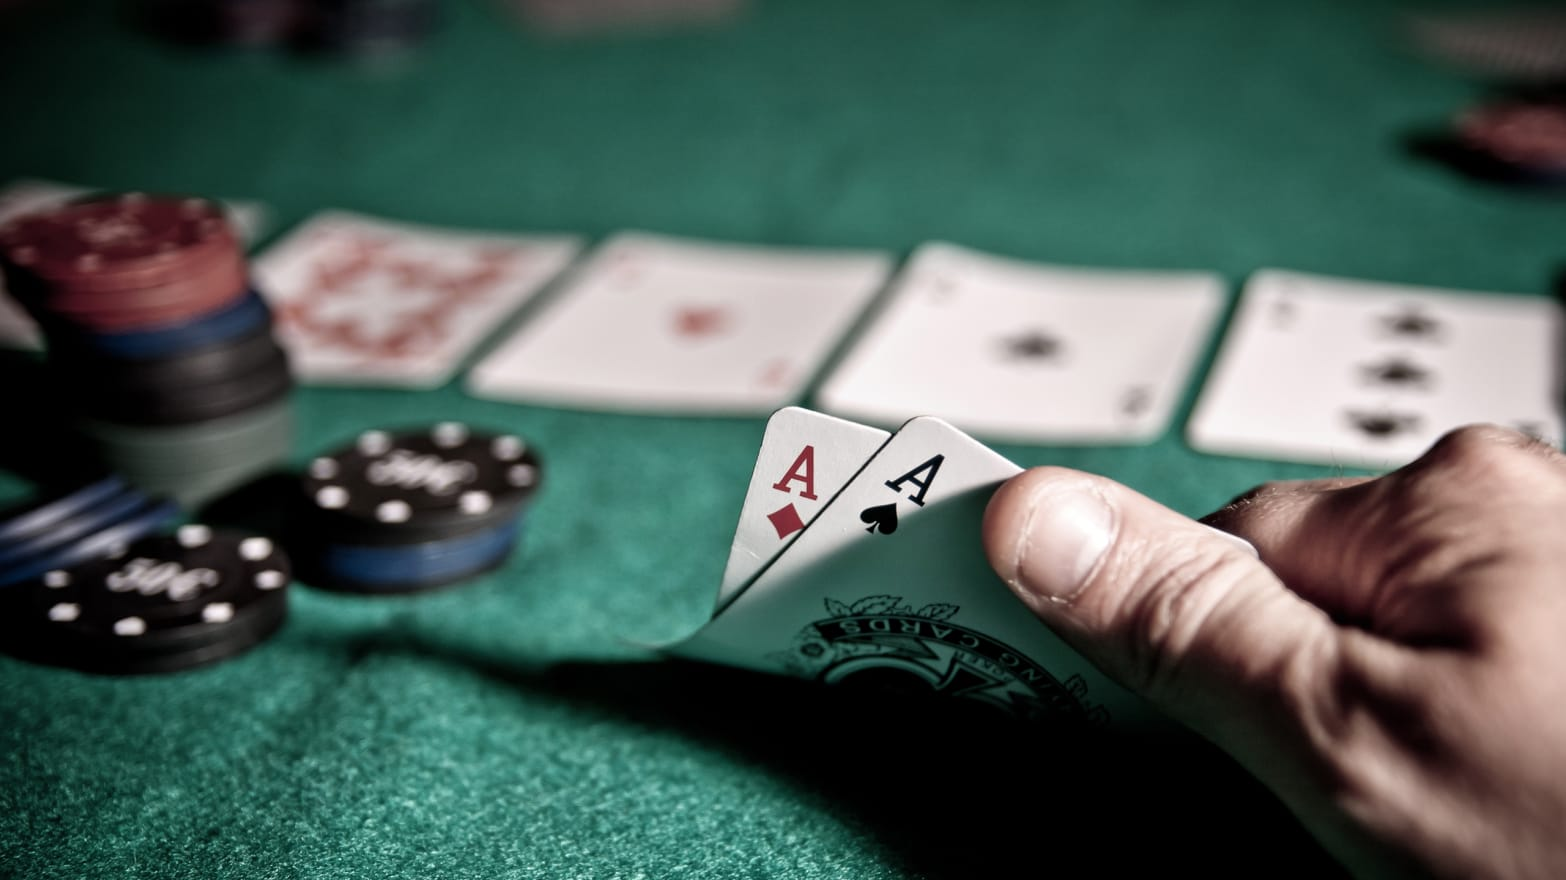 Getting your emotions in check while sports betting